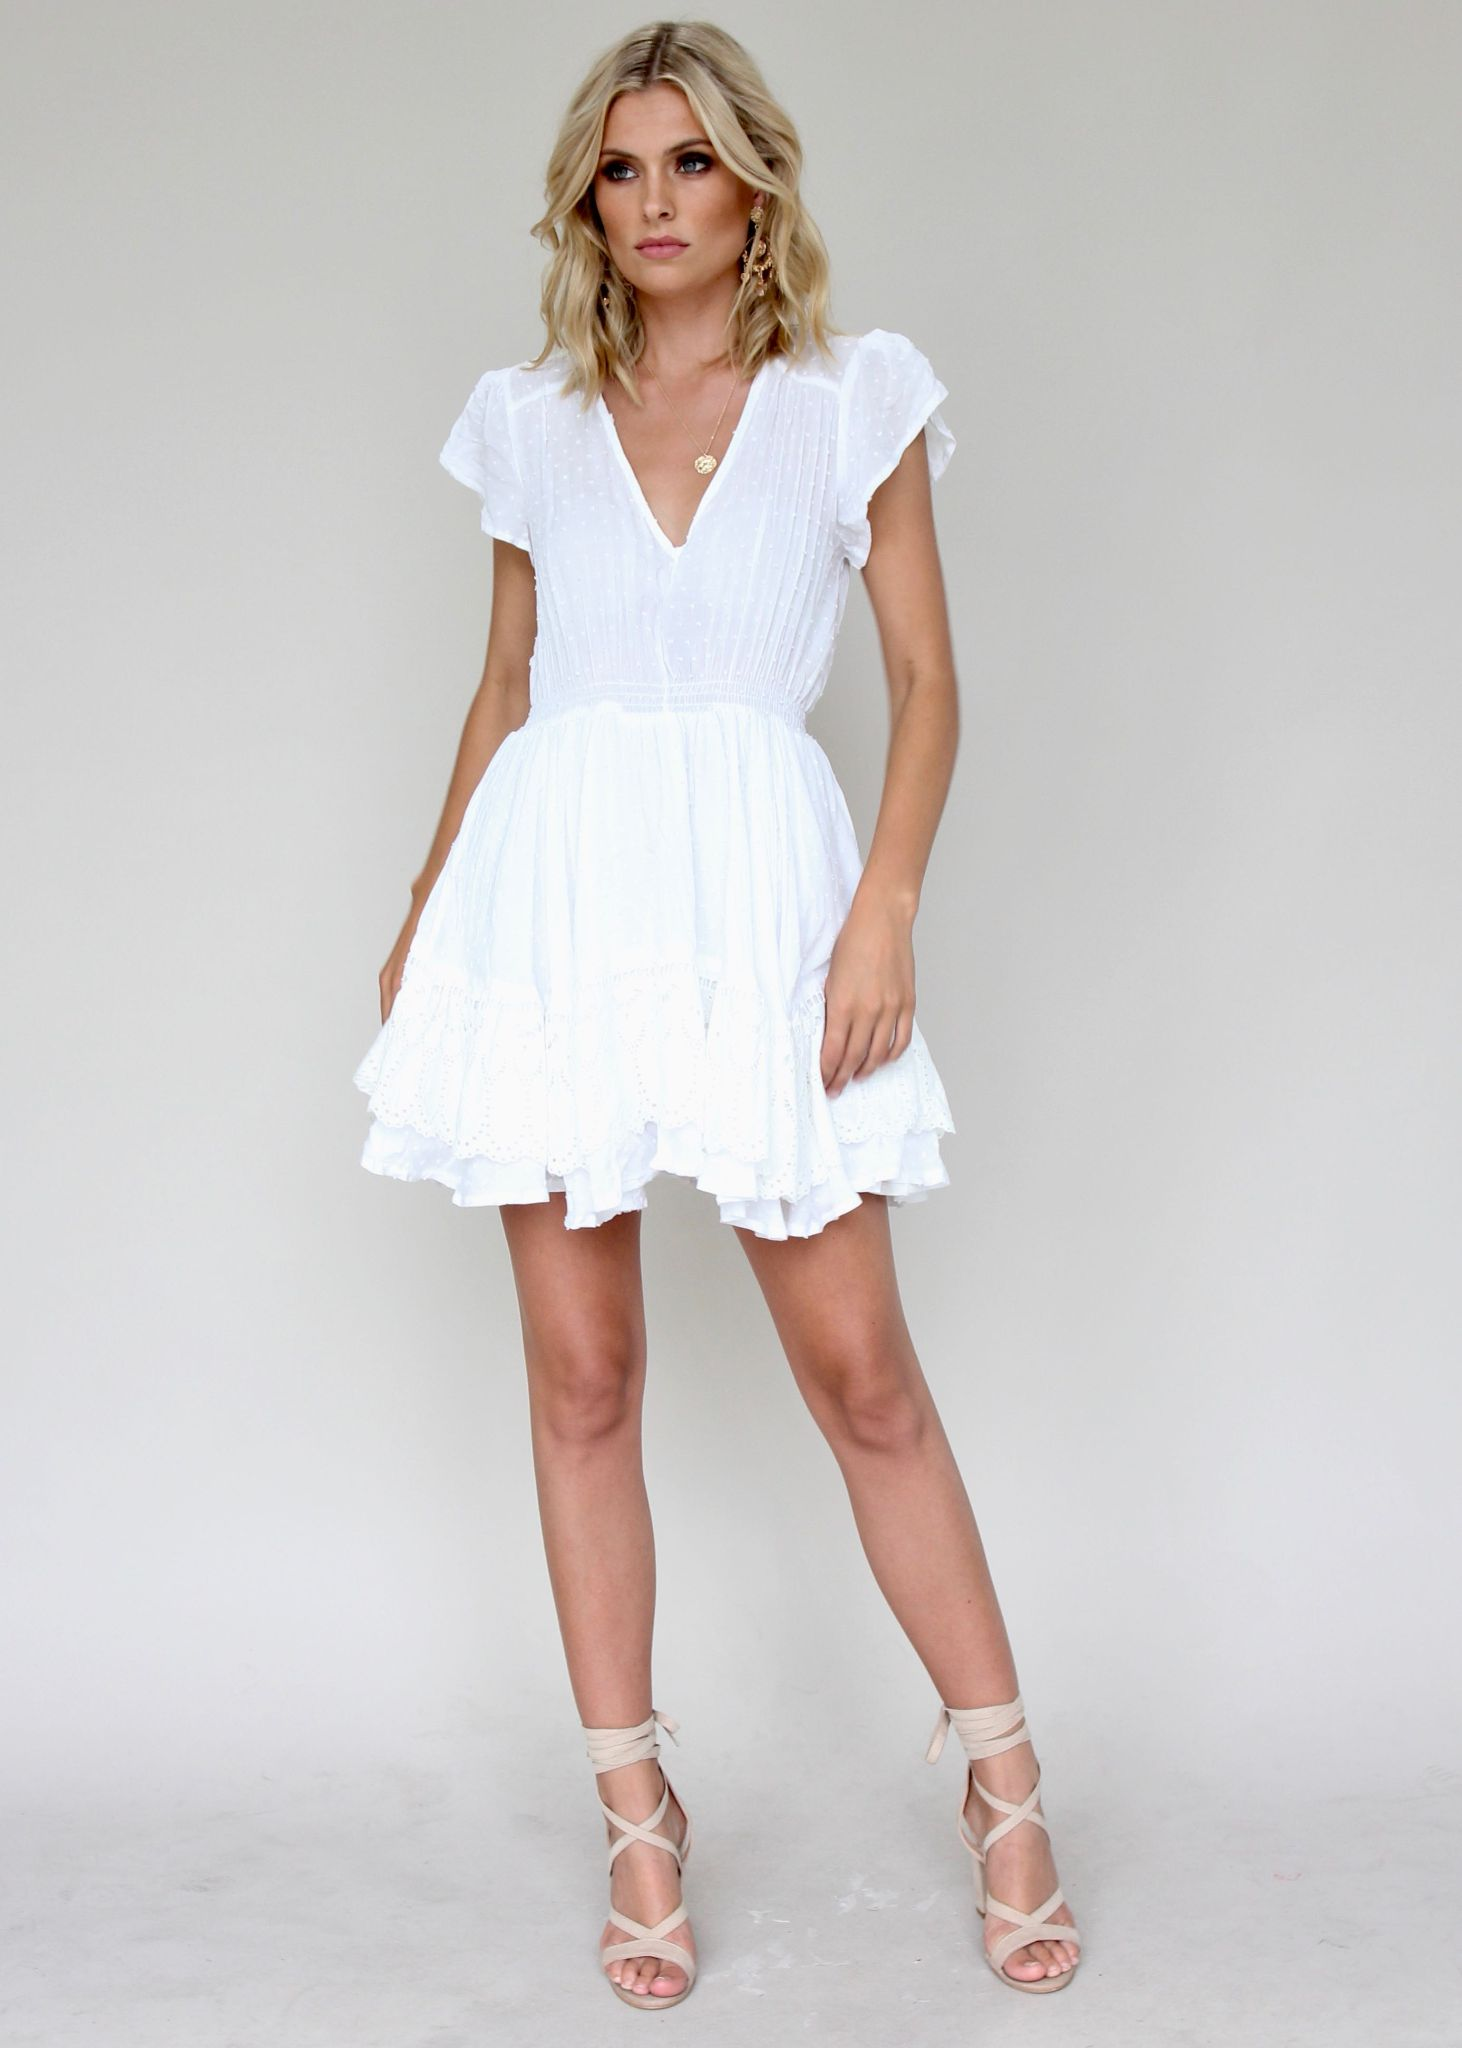 Alysse Mini Dress - White Embroidered